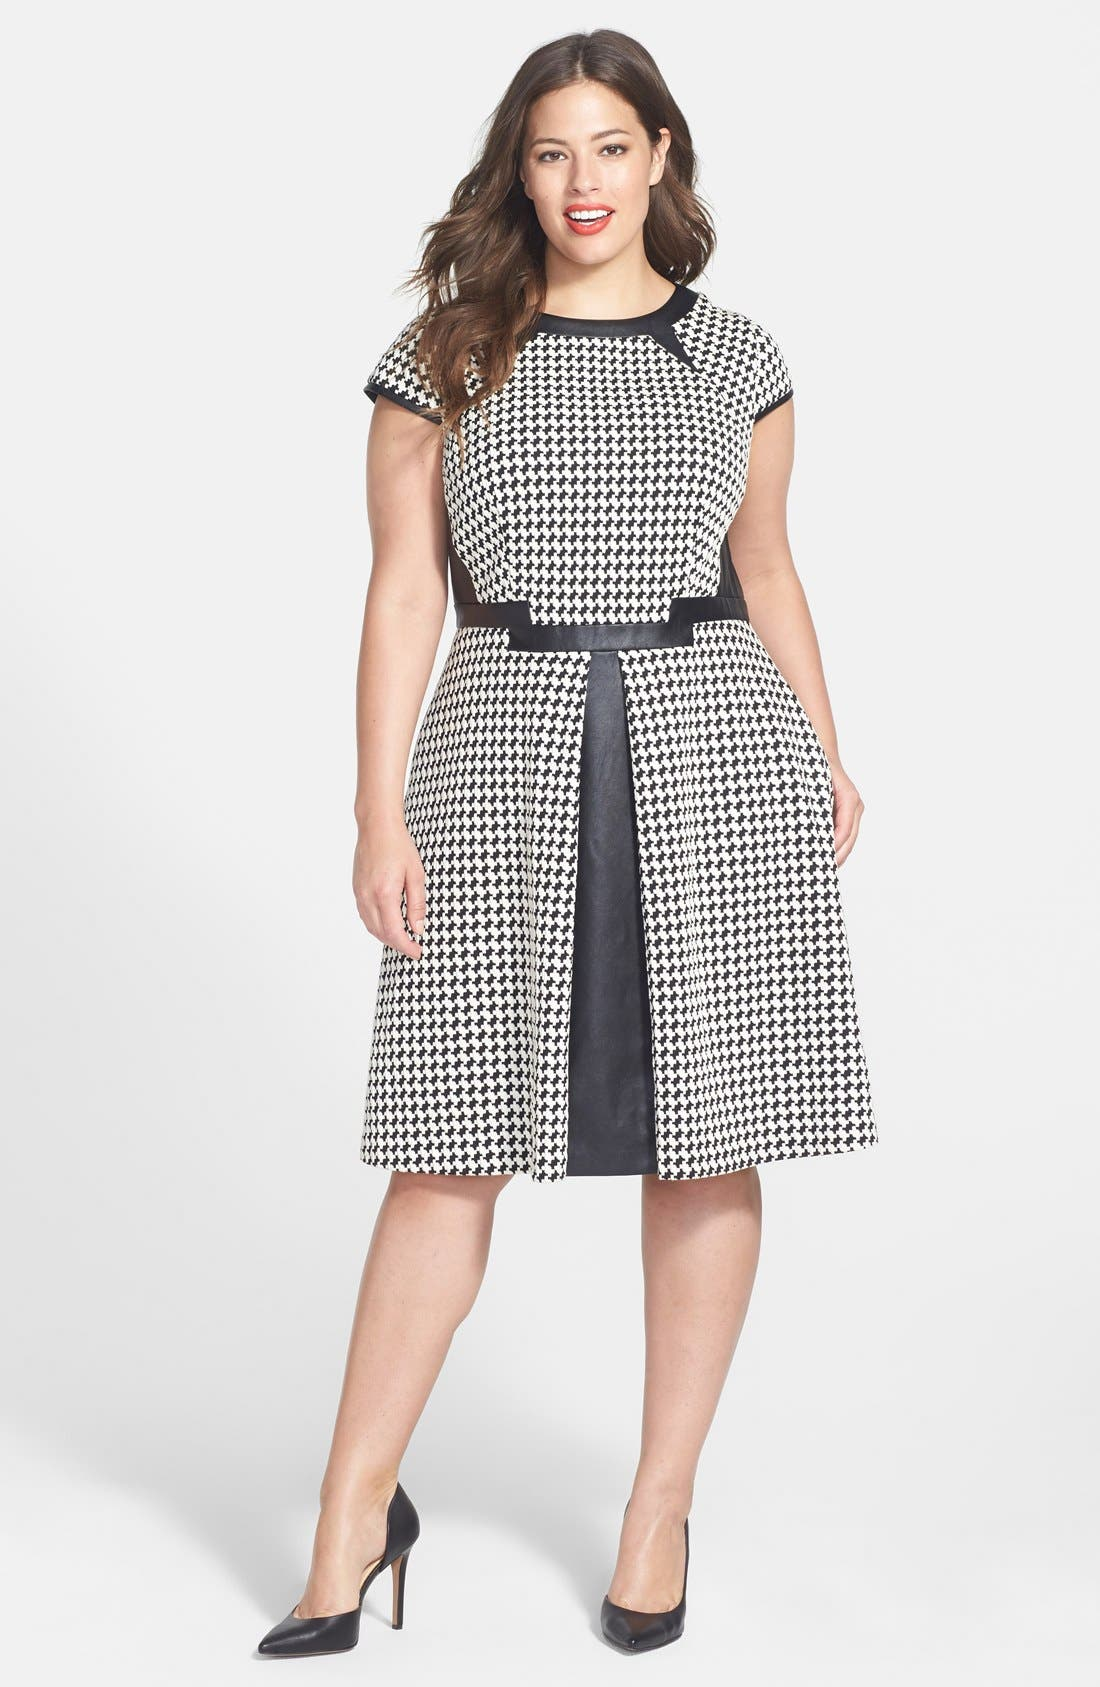 Main Image - Julia Jordan Houndstooth Dress & Sam Edelman Pump (Plus Size)